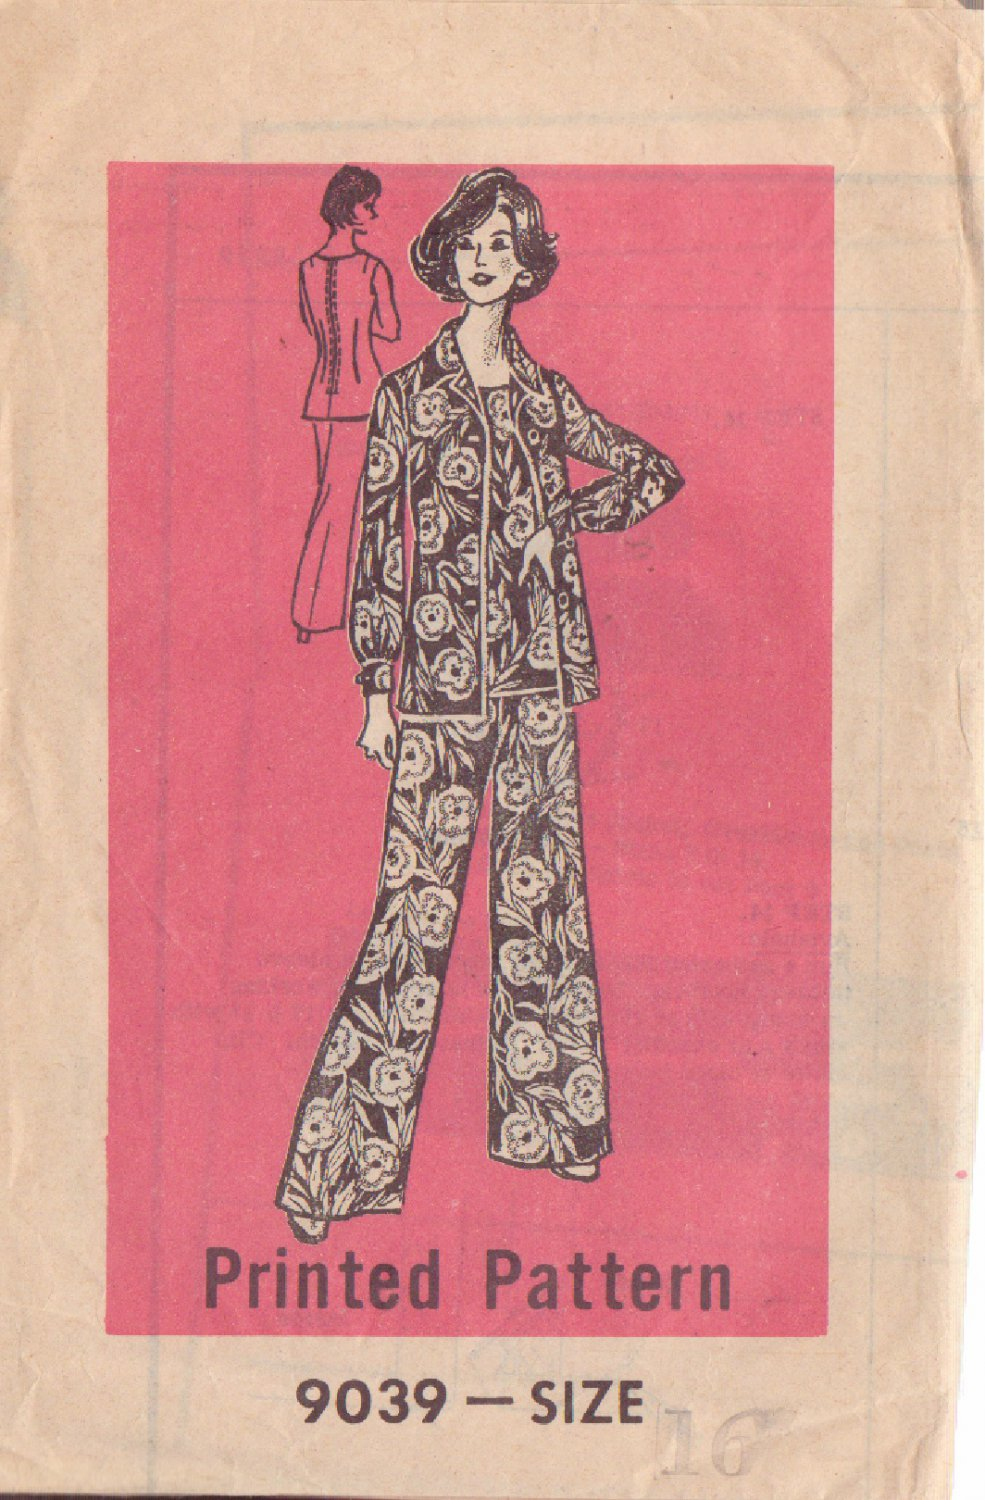 PRINTED PATTERN 9039, DATED 1975, SIZE 16 MISSES' 3 PC PANT SET